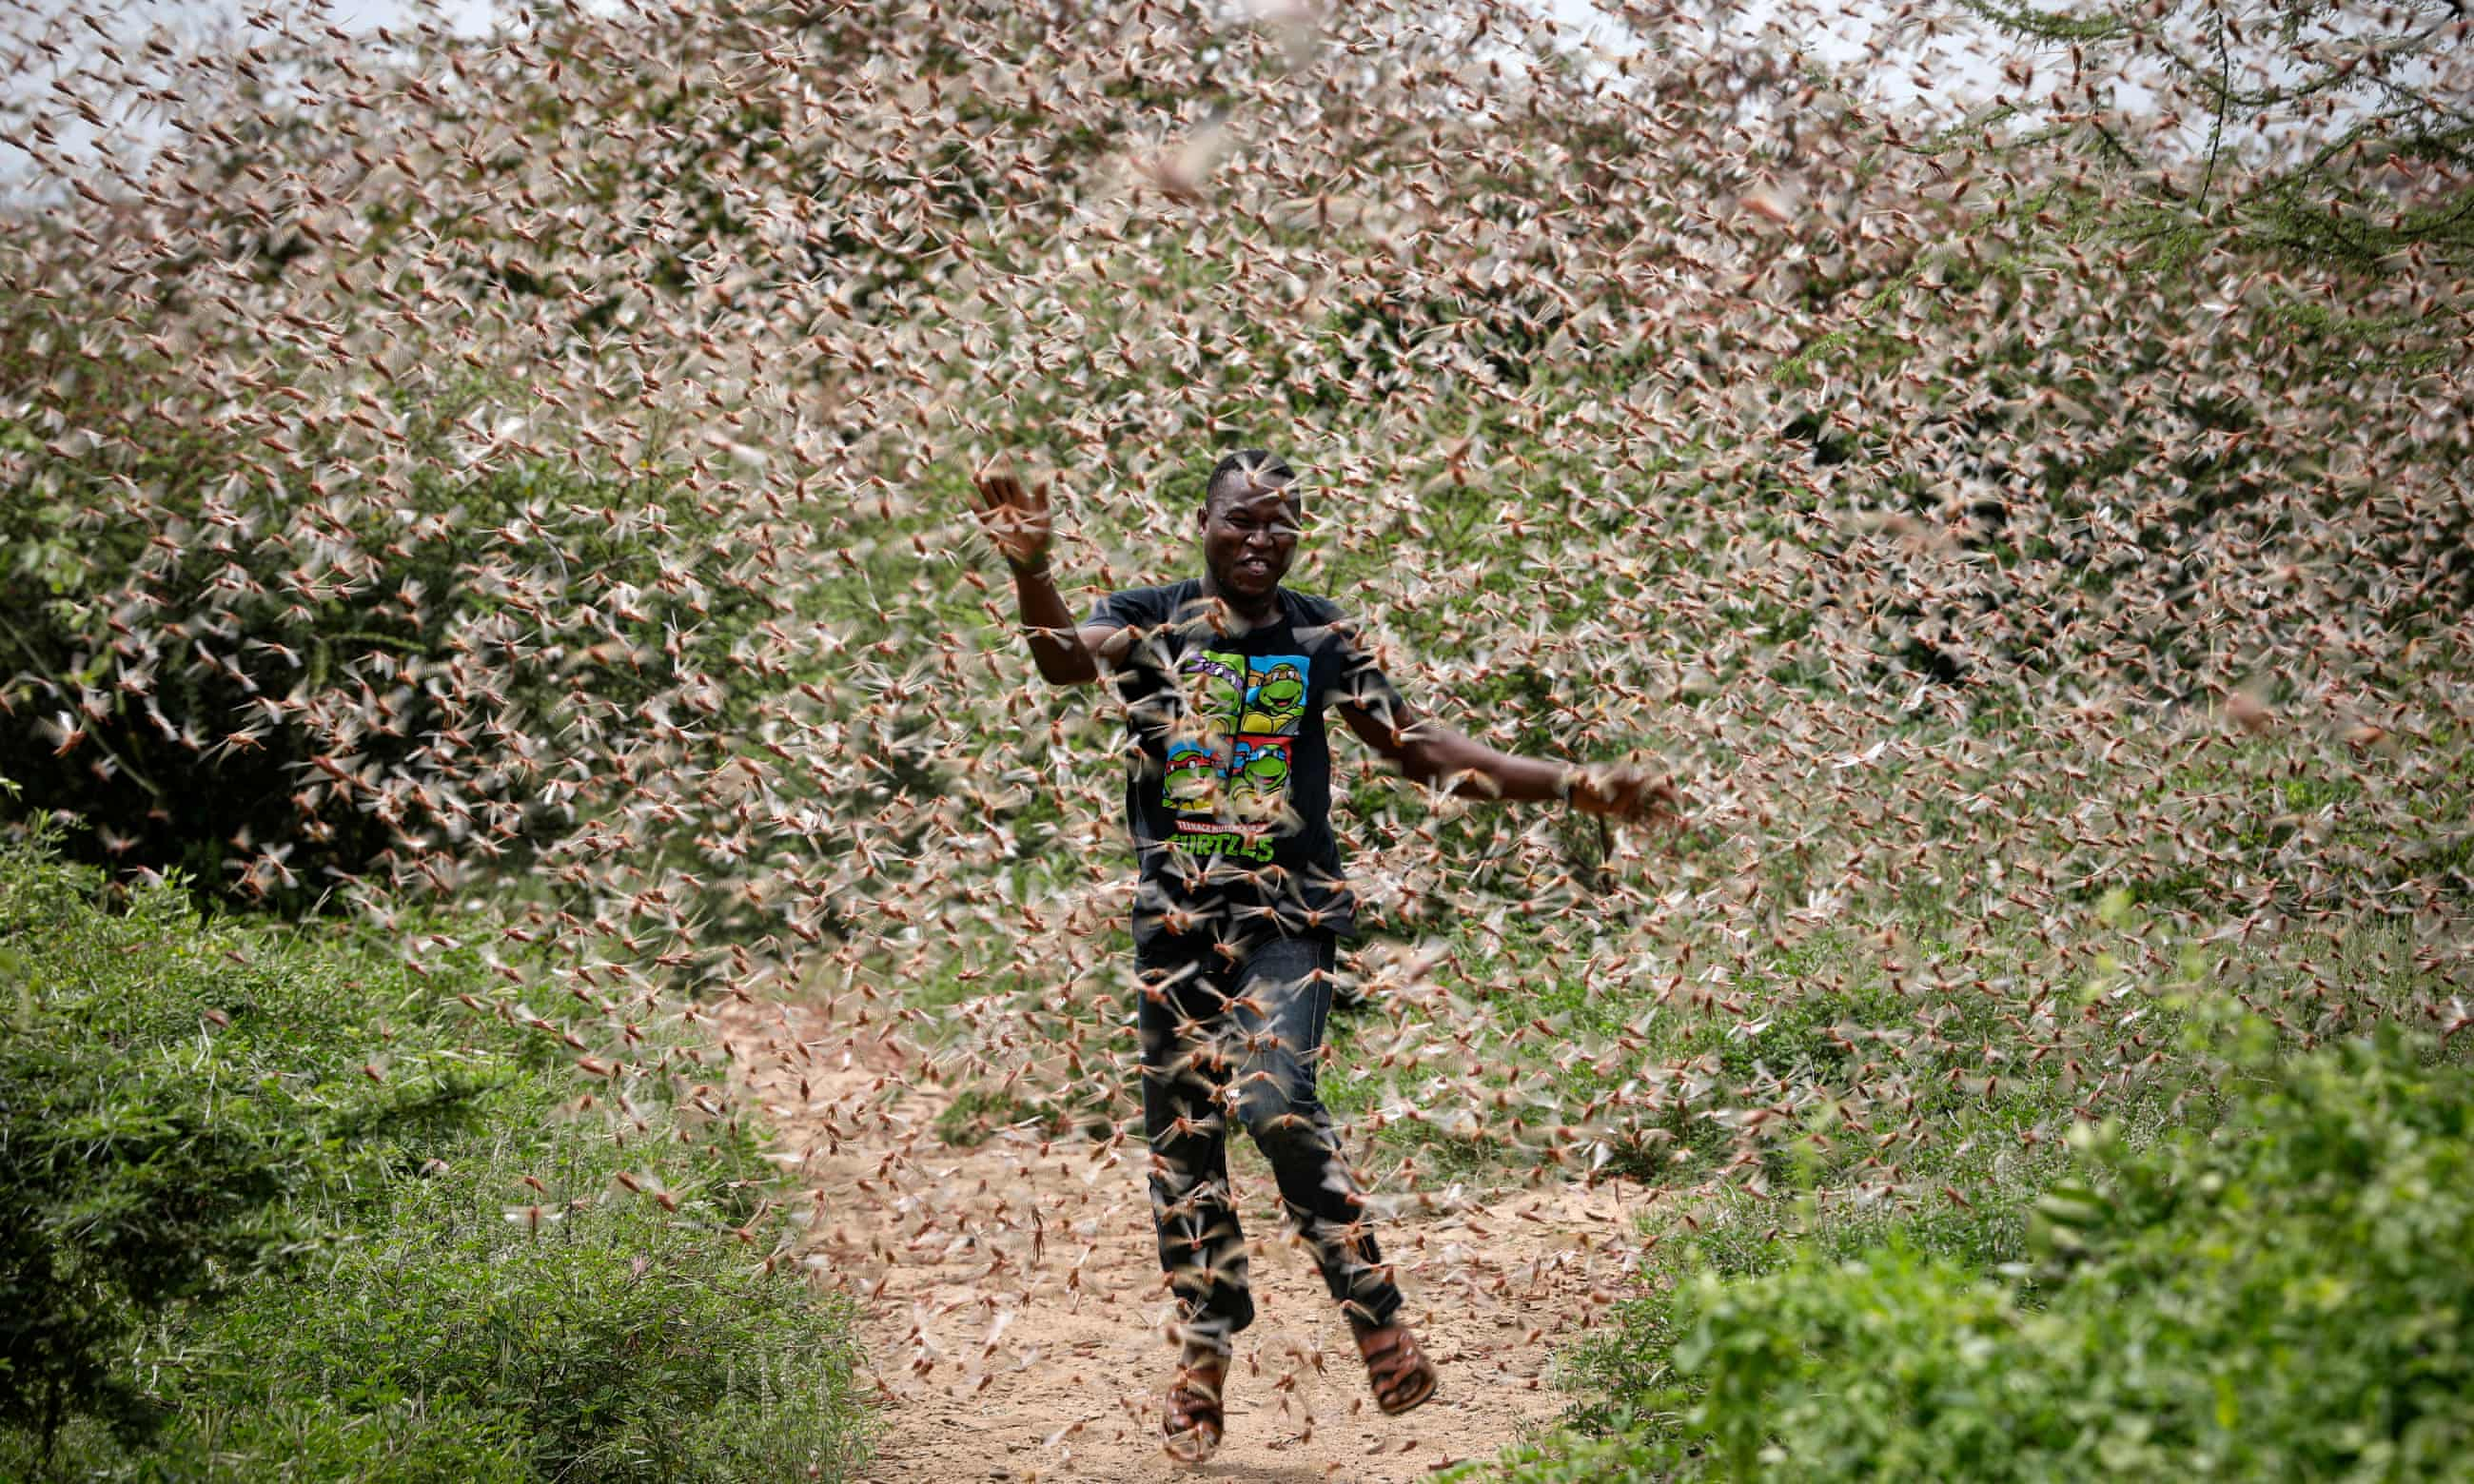 Billions of locusts swarm through Kenya - in pictures